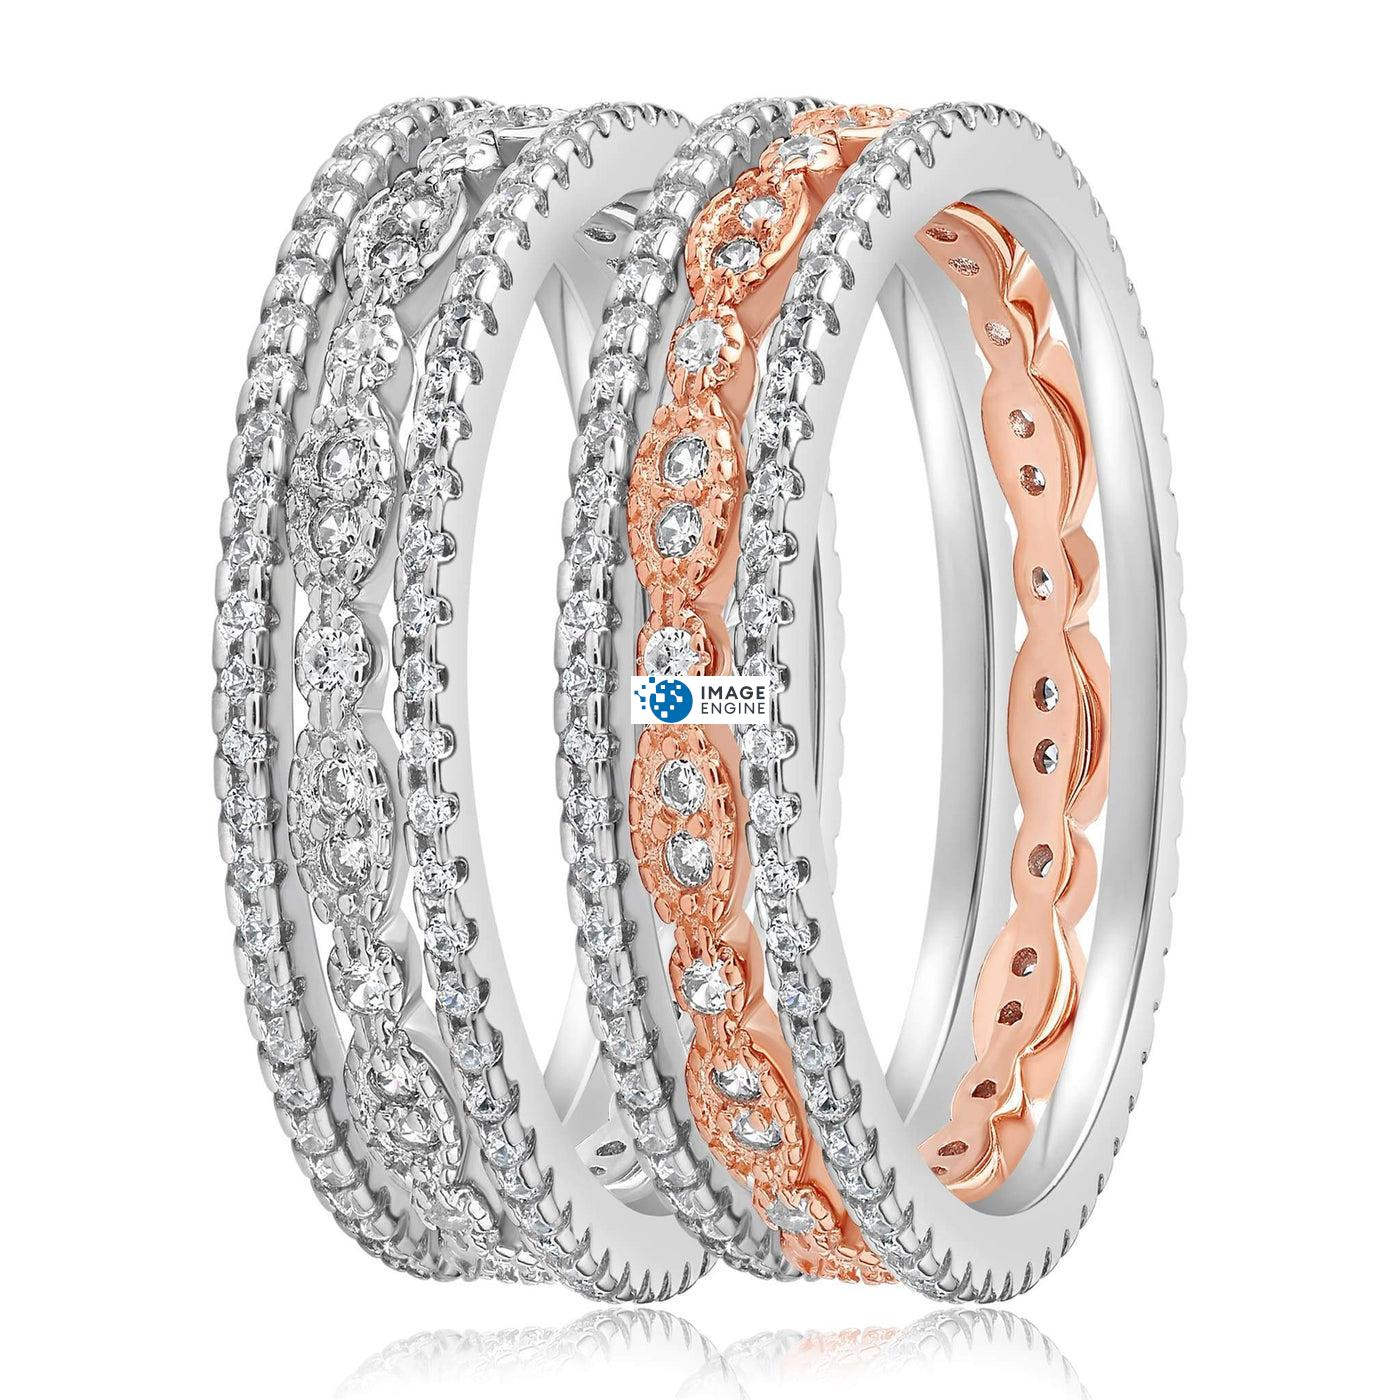 Juliana 3 Ring Set - Side by Side - 925 Sterling Silver and 18K Rose Gold Vermeil